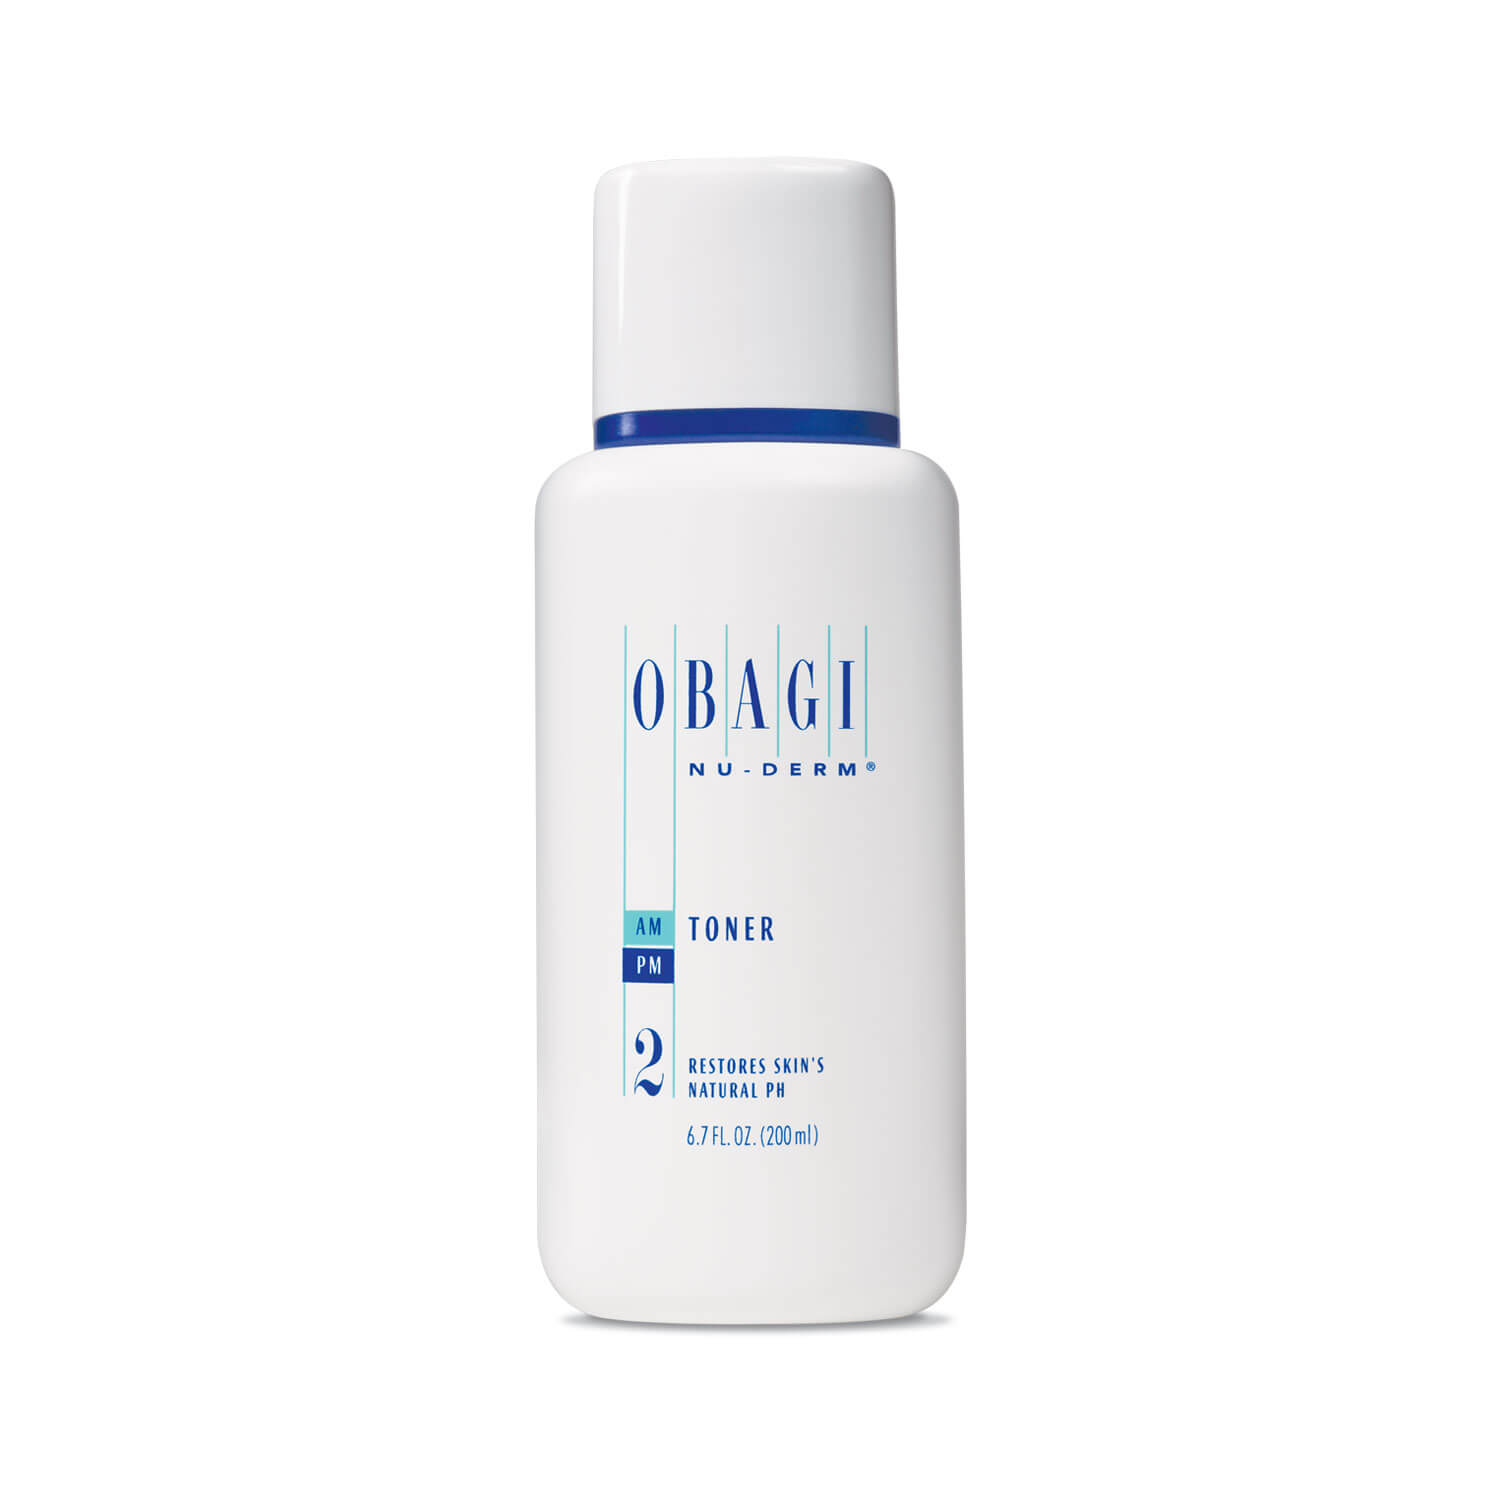 Obagi Nu Derm Toner Buy Online At Skincarerx Mineral Botanica Acne Care Description